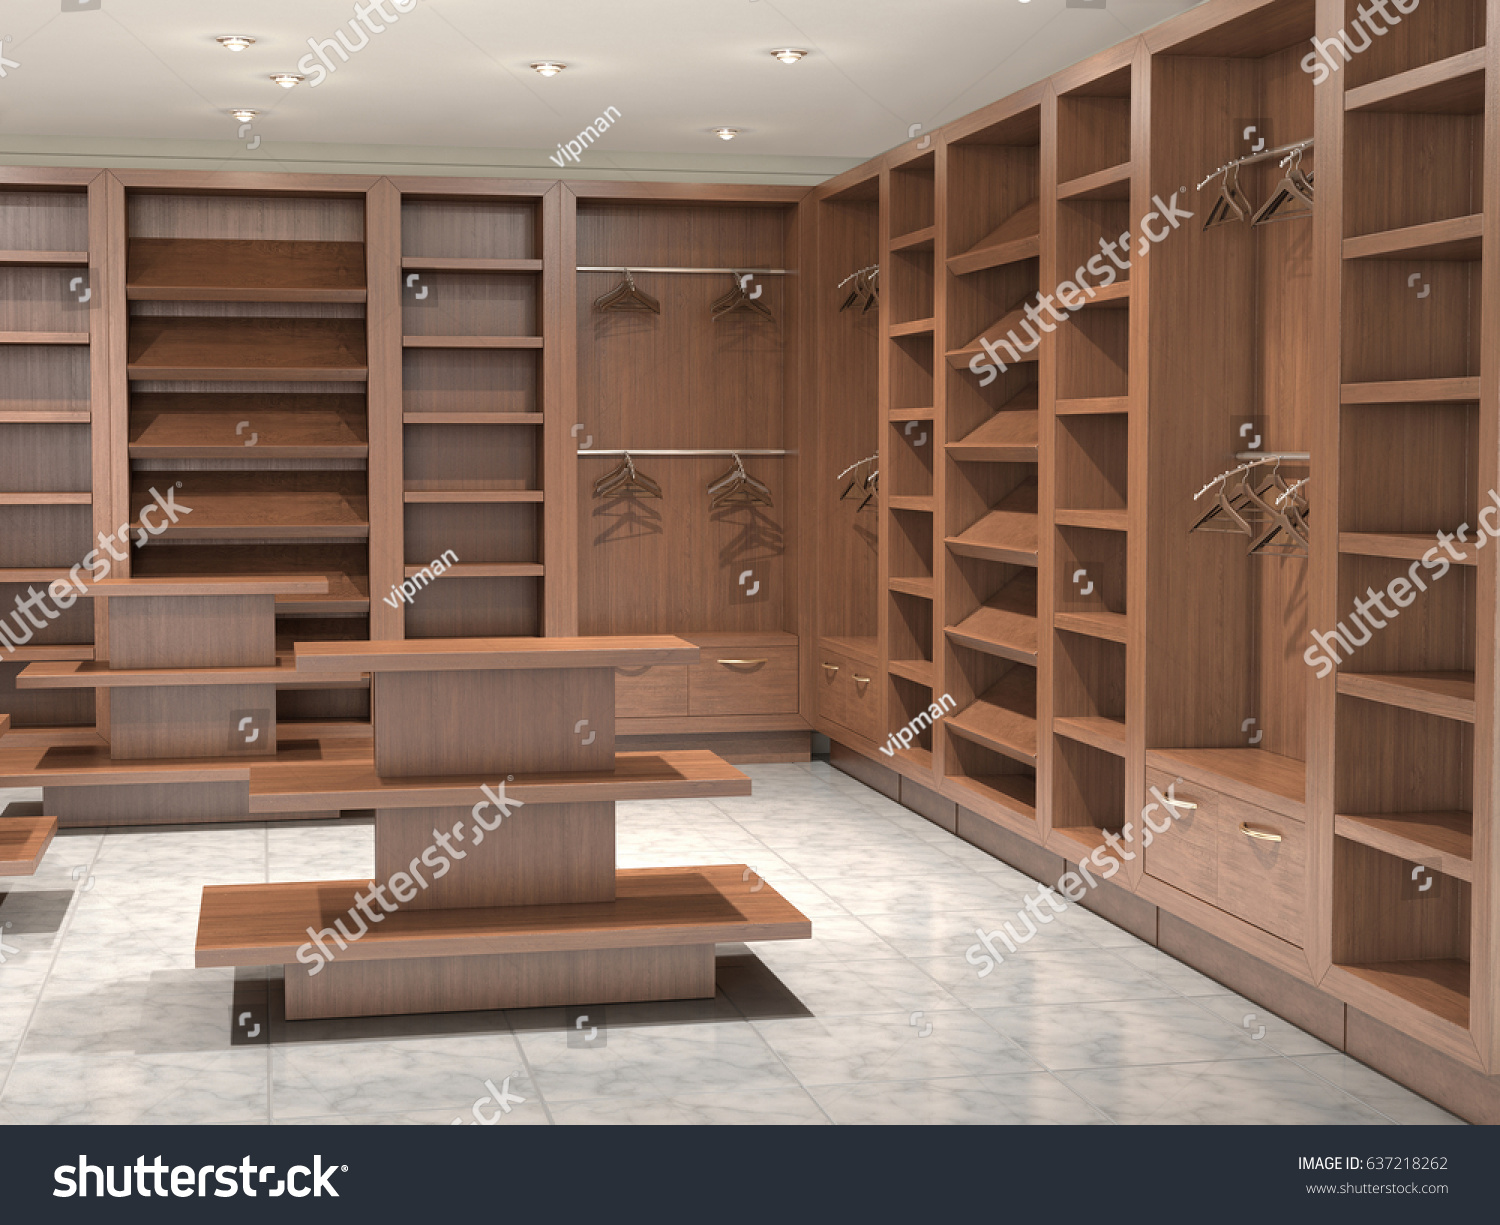 Store Inside Empty With Wooden Shelves 3d Illustration